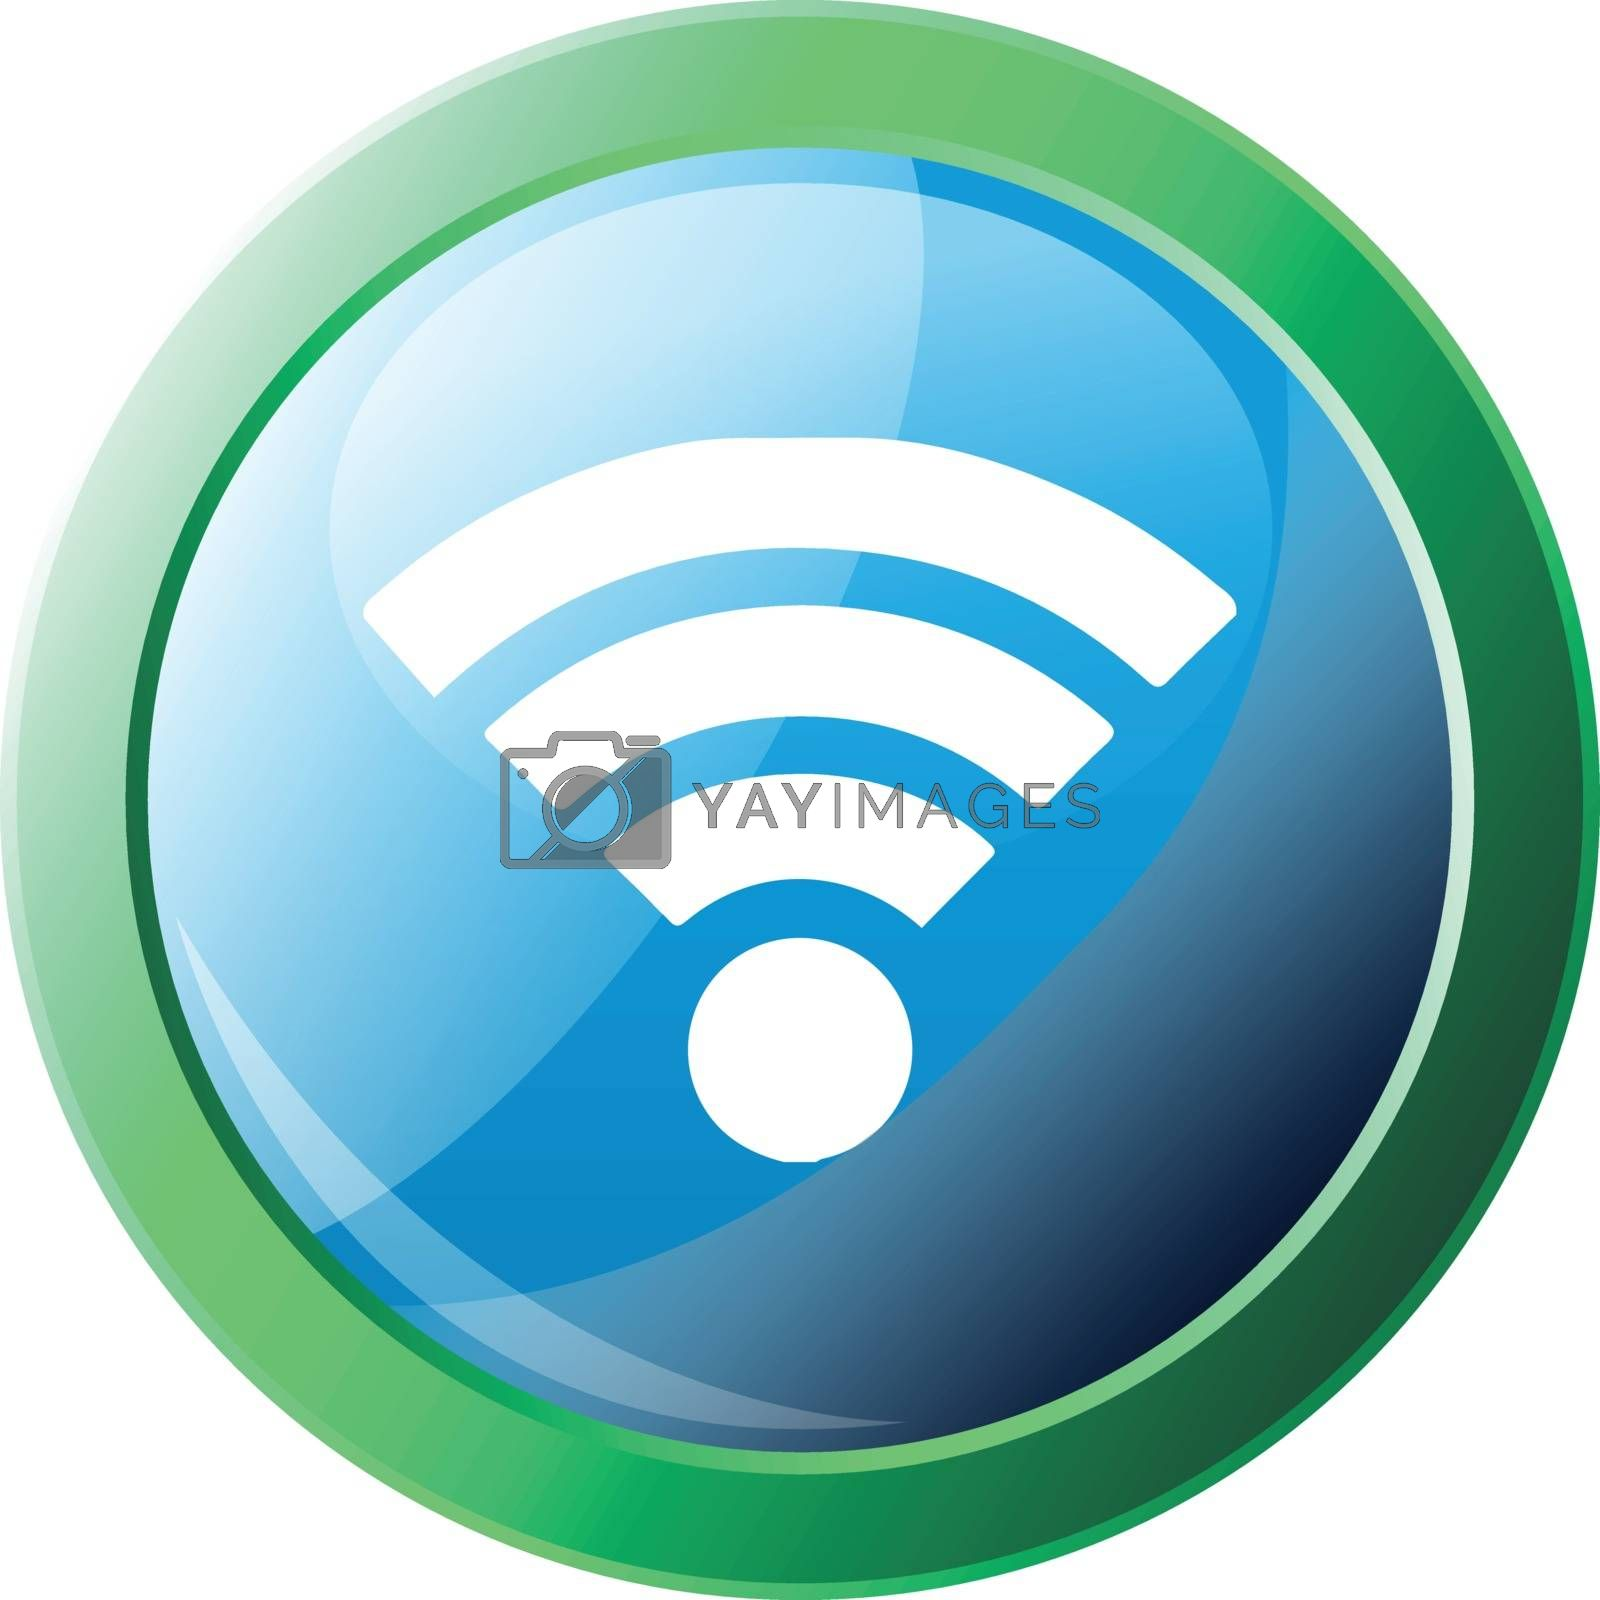 Wi-Fi vector icon illustration on a white background